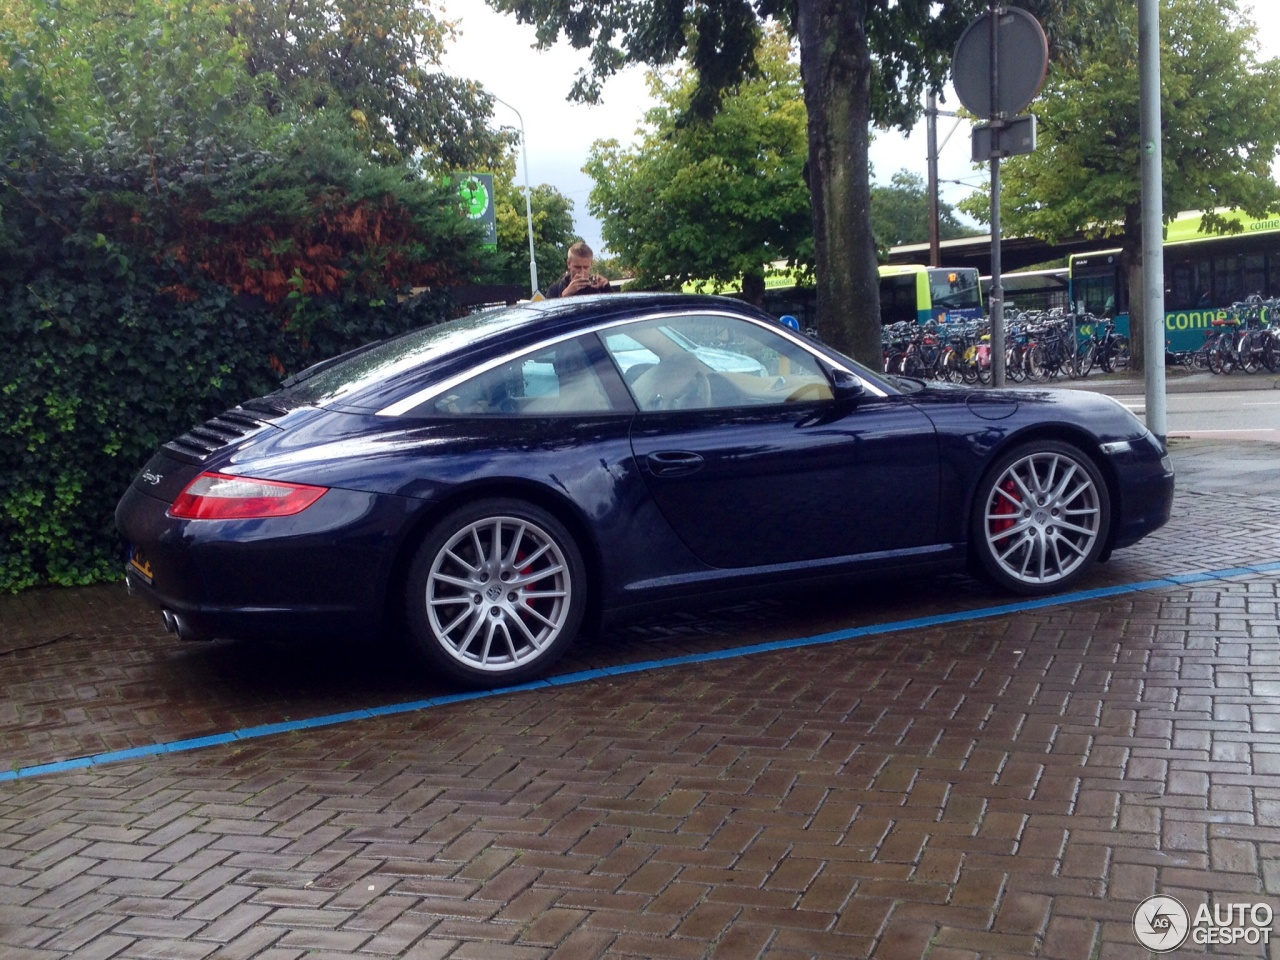 porsche 997 targa 4s mki 19 august 2014 autogespot. Black Bedroom Furniture Sets. Home Design Ideas